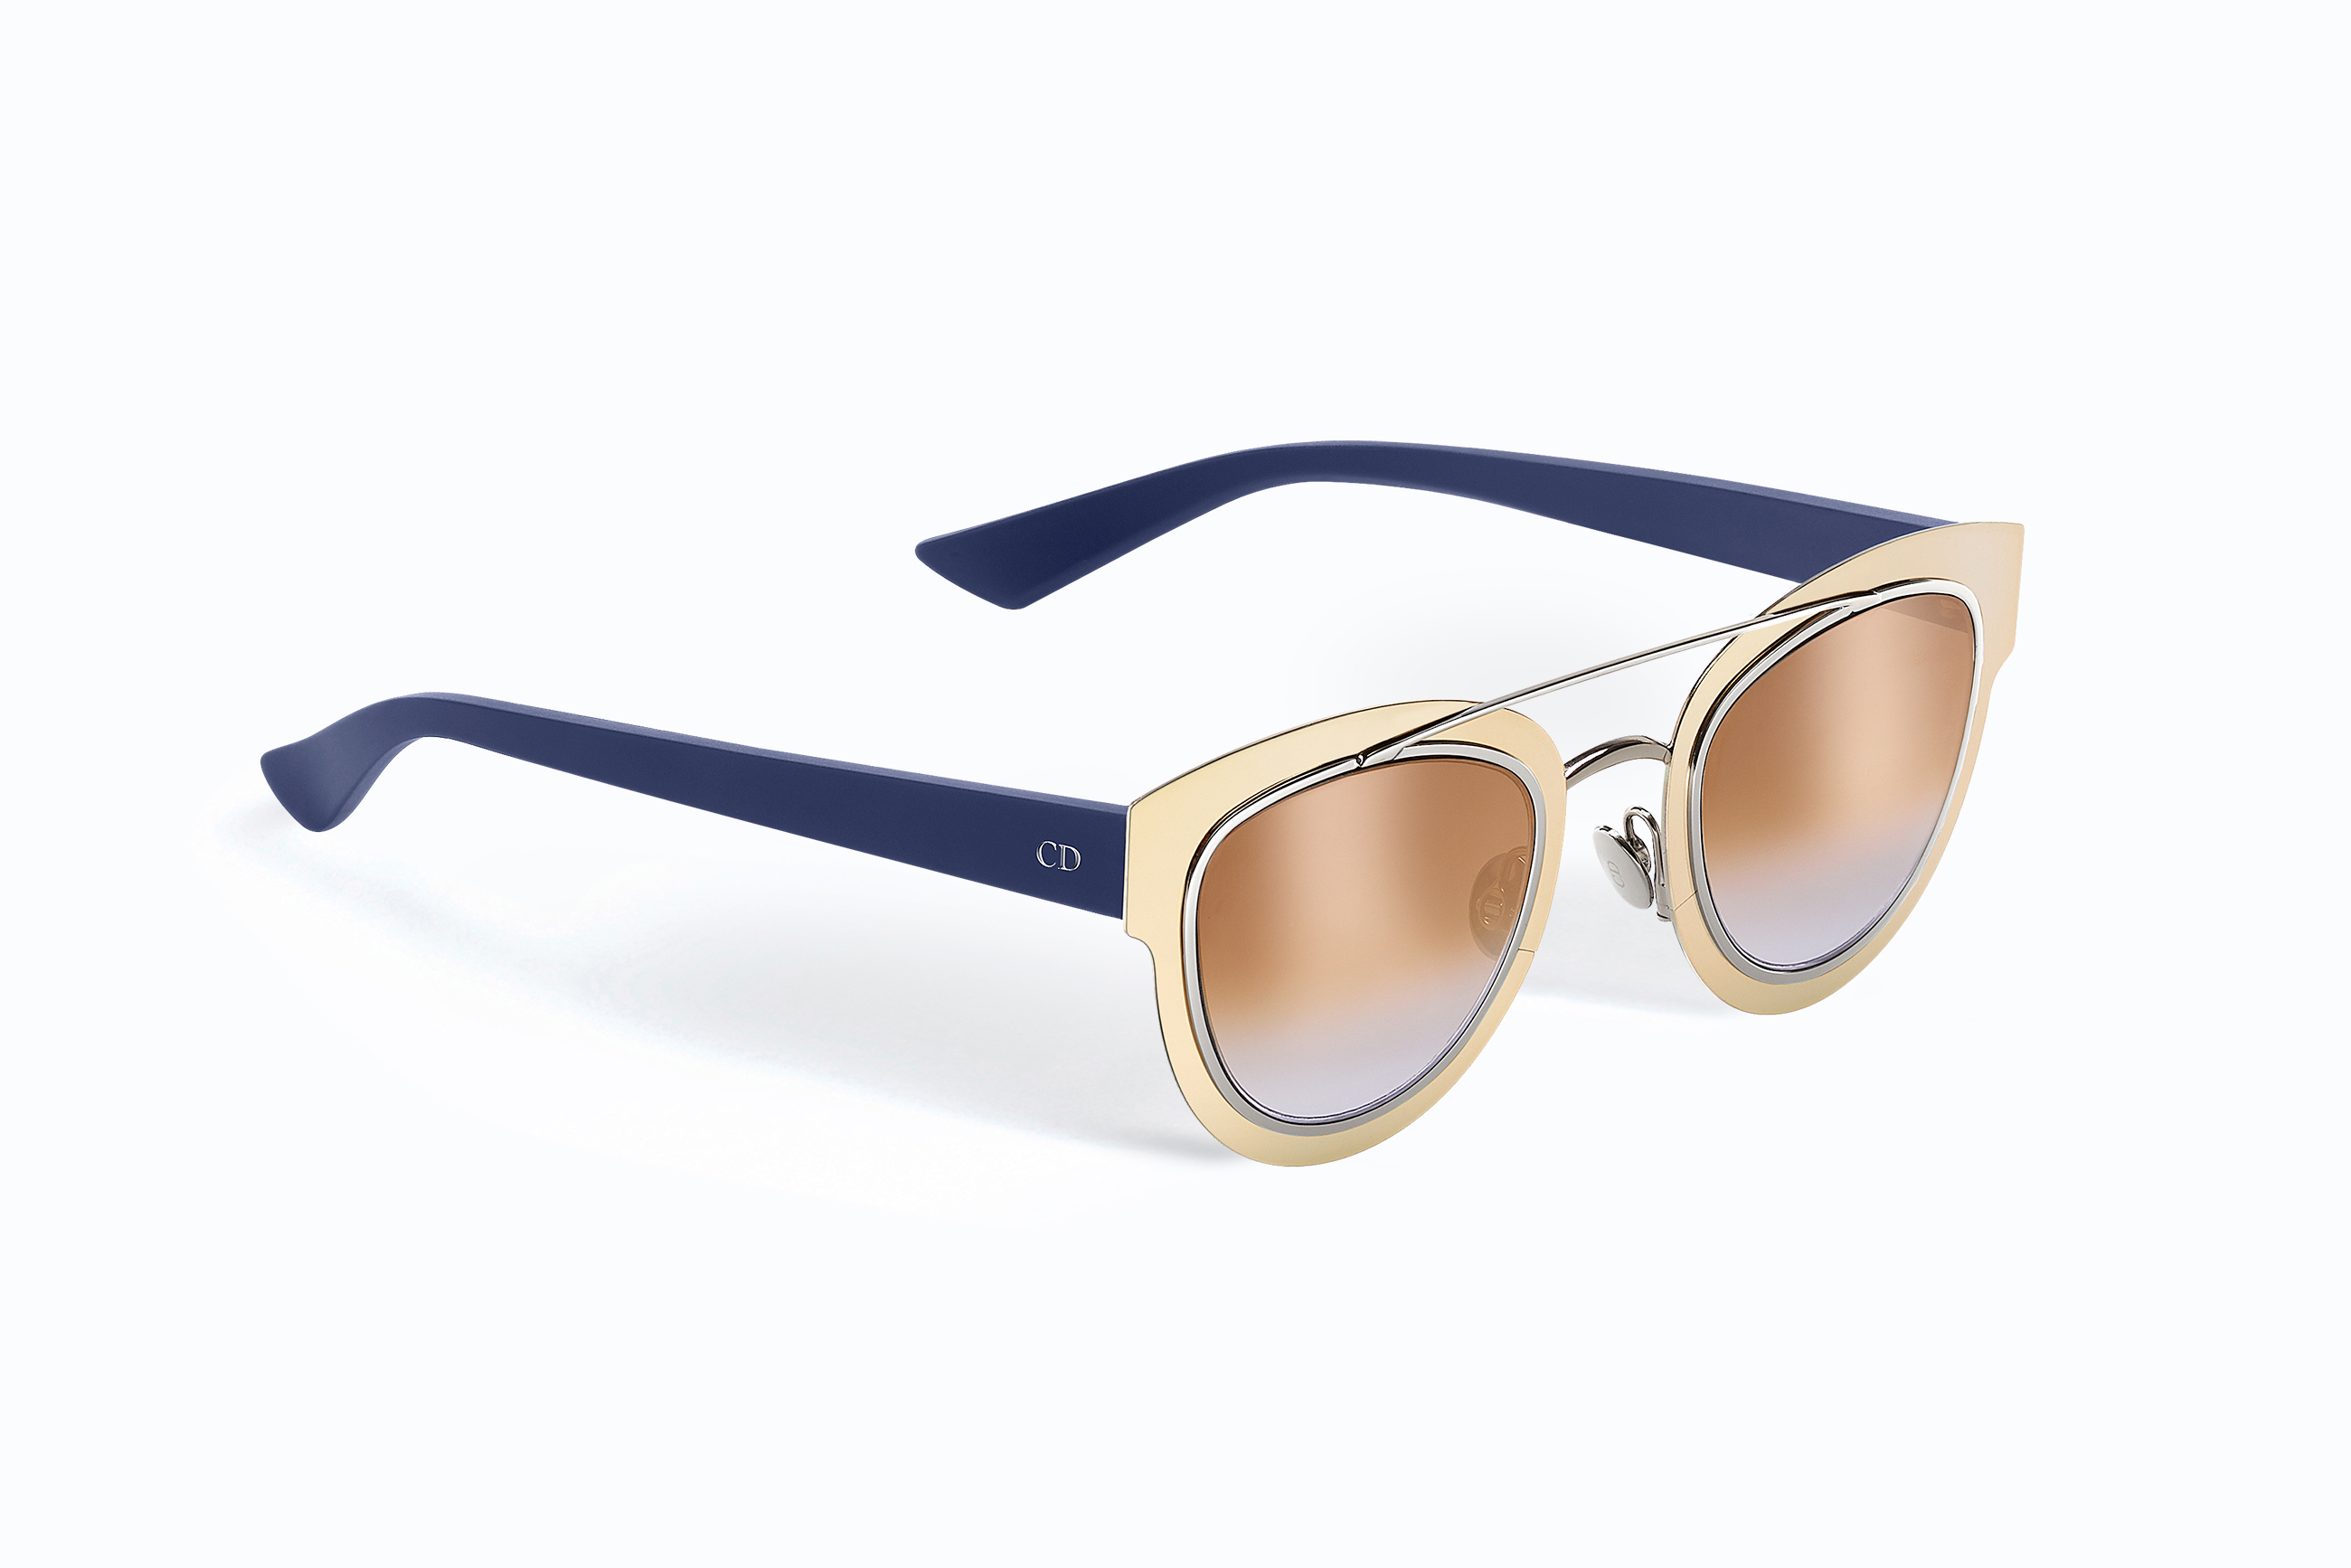 Dior Chromic Golden